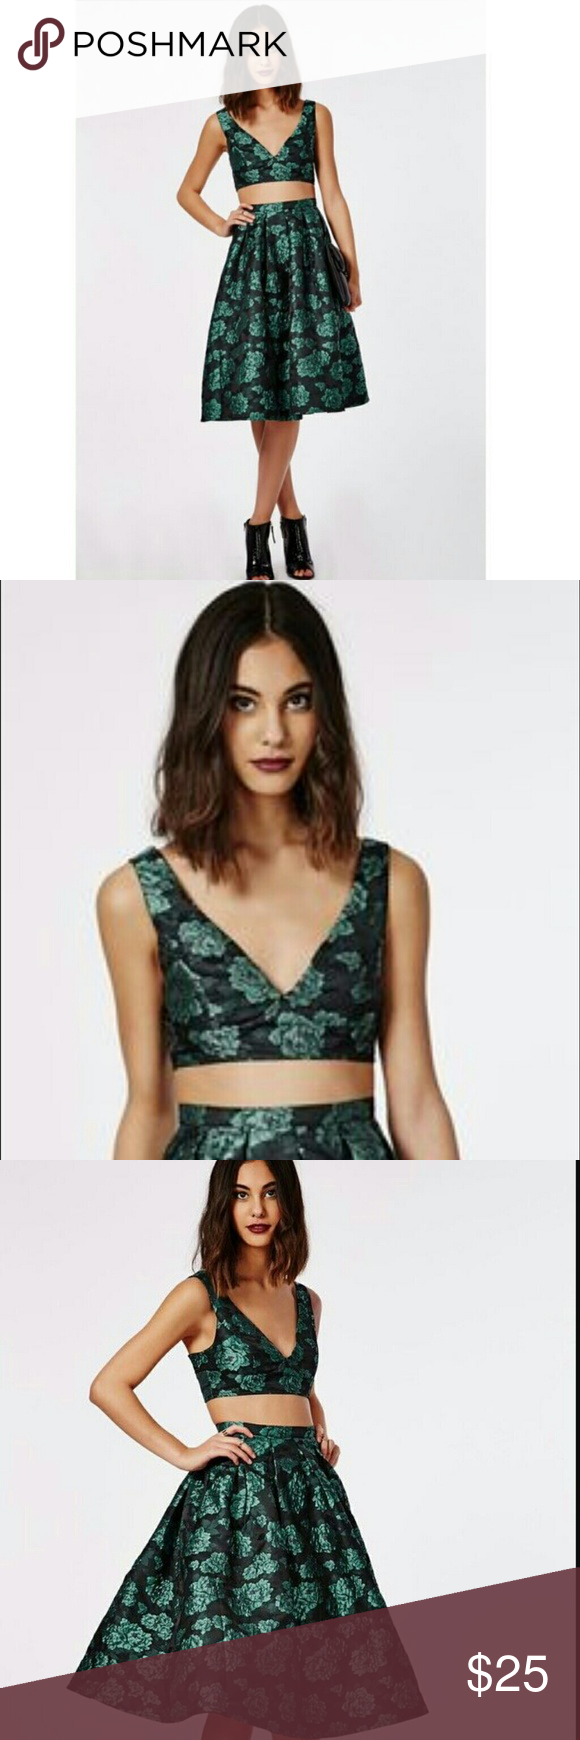 NWT MISGUIDED METALLIC BRALETTE (6) New with tags Misguided metallic green brocade floral    with delicate sparkly purple  centers. Zip back closure.    Size Small 6 Material:  20% Cotton 80% Polyester Hand Wash  FAST SHIPPING!! Misguided Tops